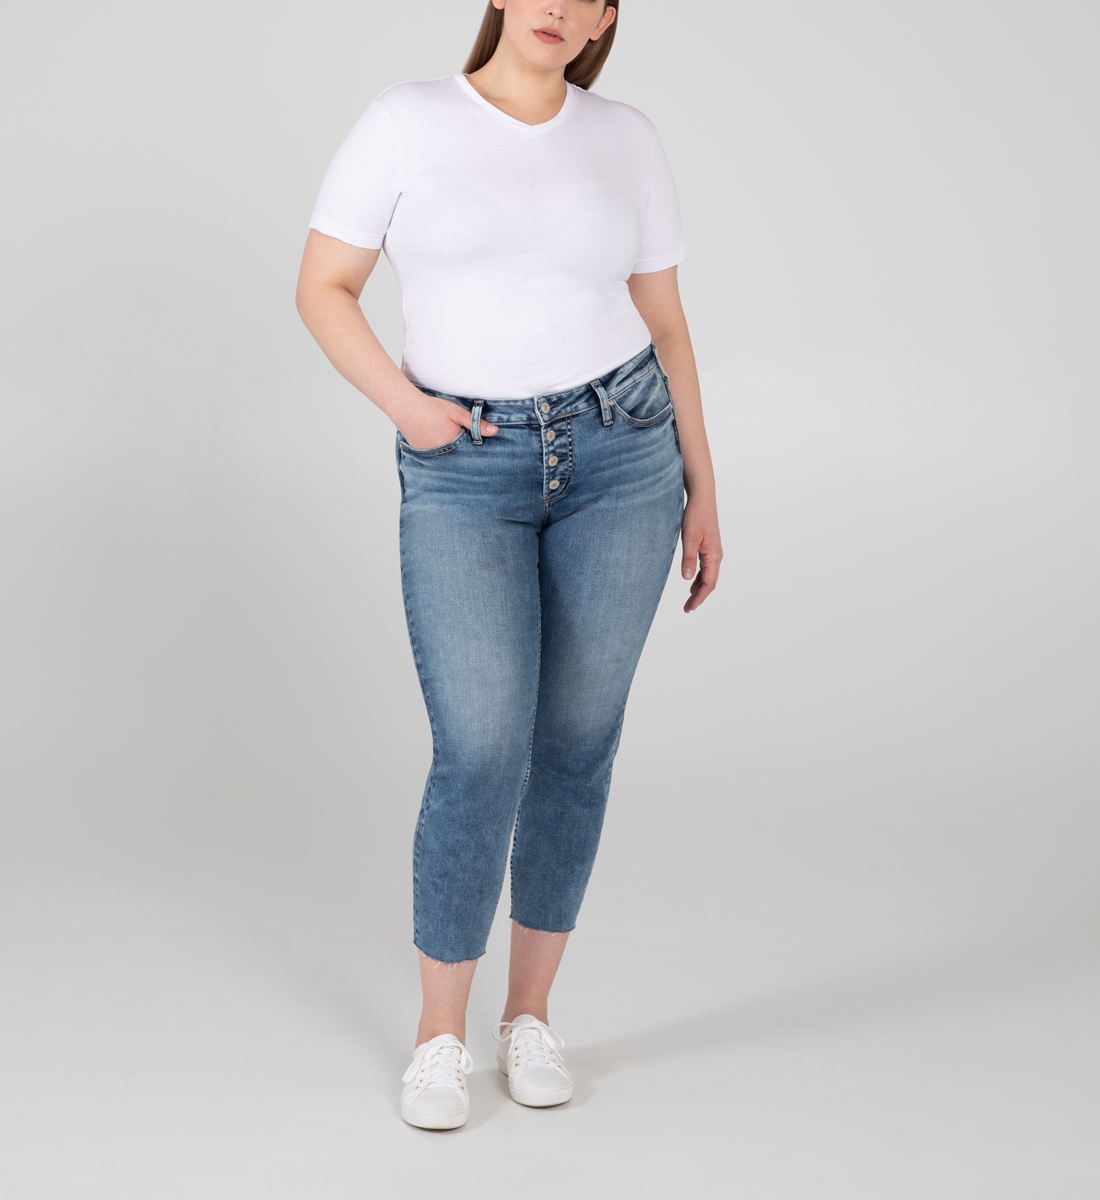 Silver Jeans Suki Mid Rise Skinny Crop Jeans Plus Size